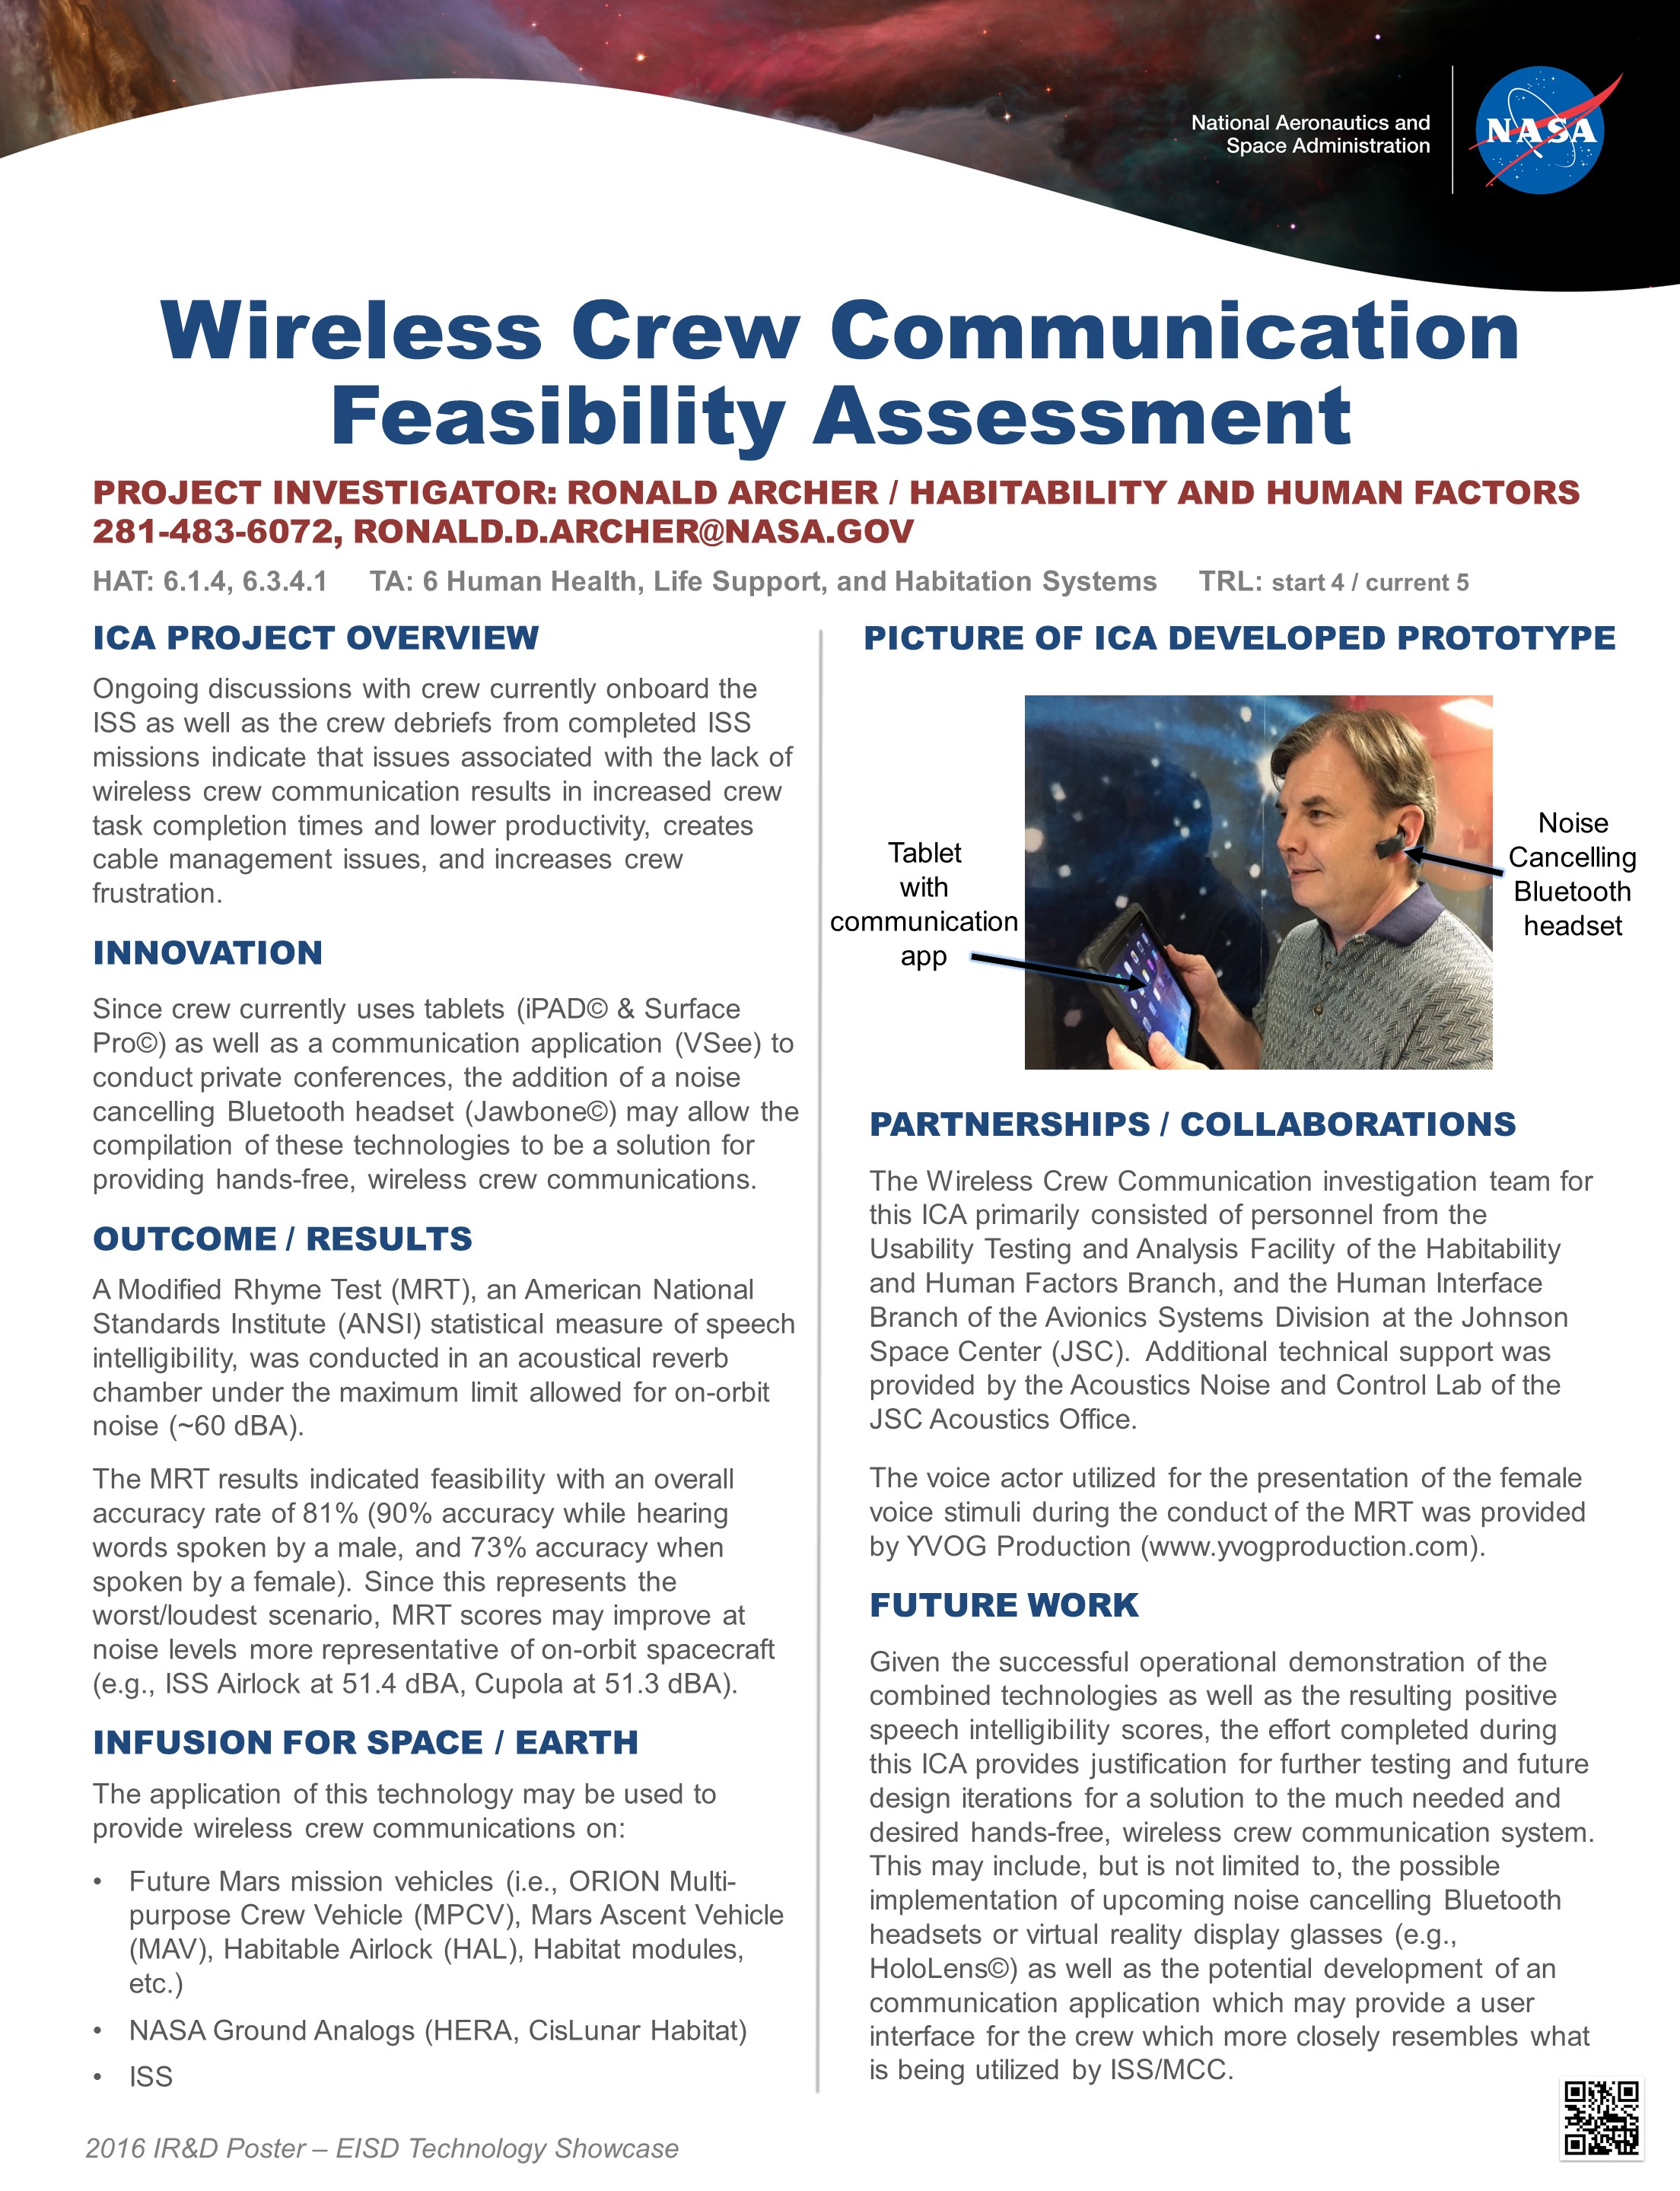 Wireless Crew Communication Technology Showcase 2016 Project Poster